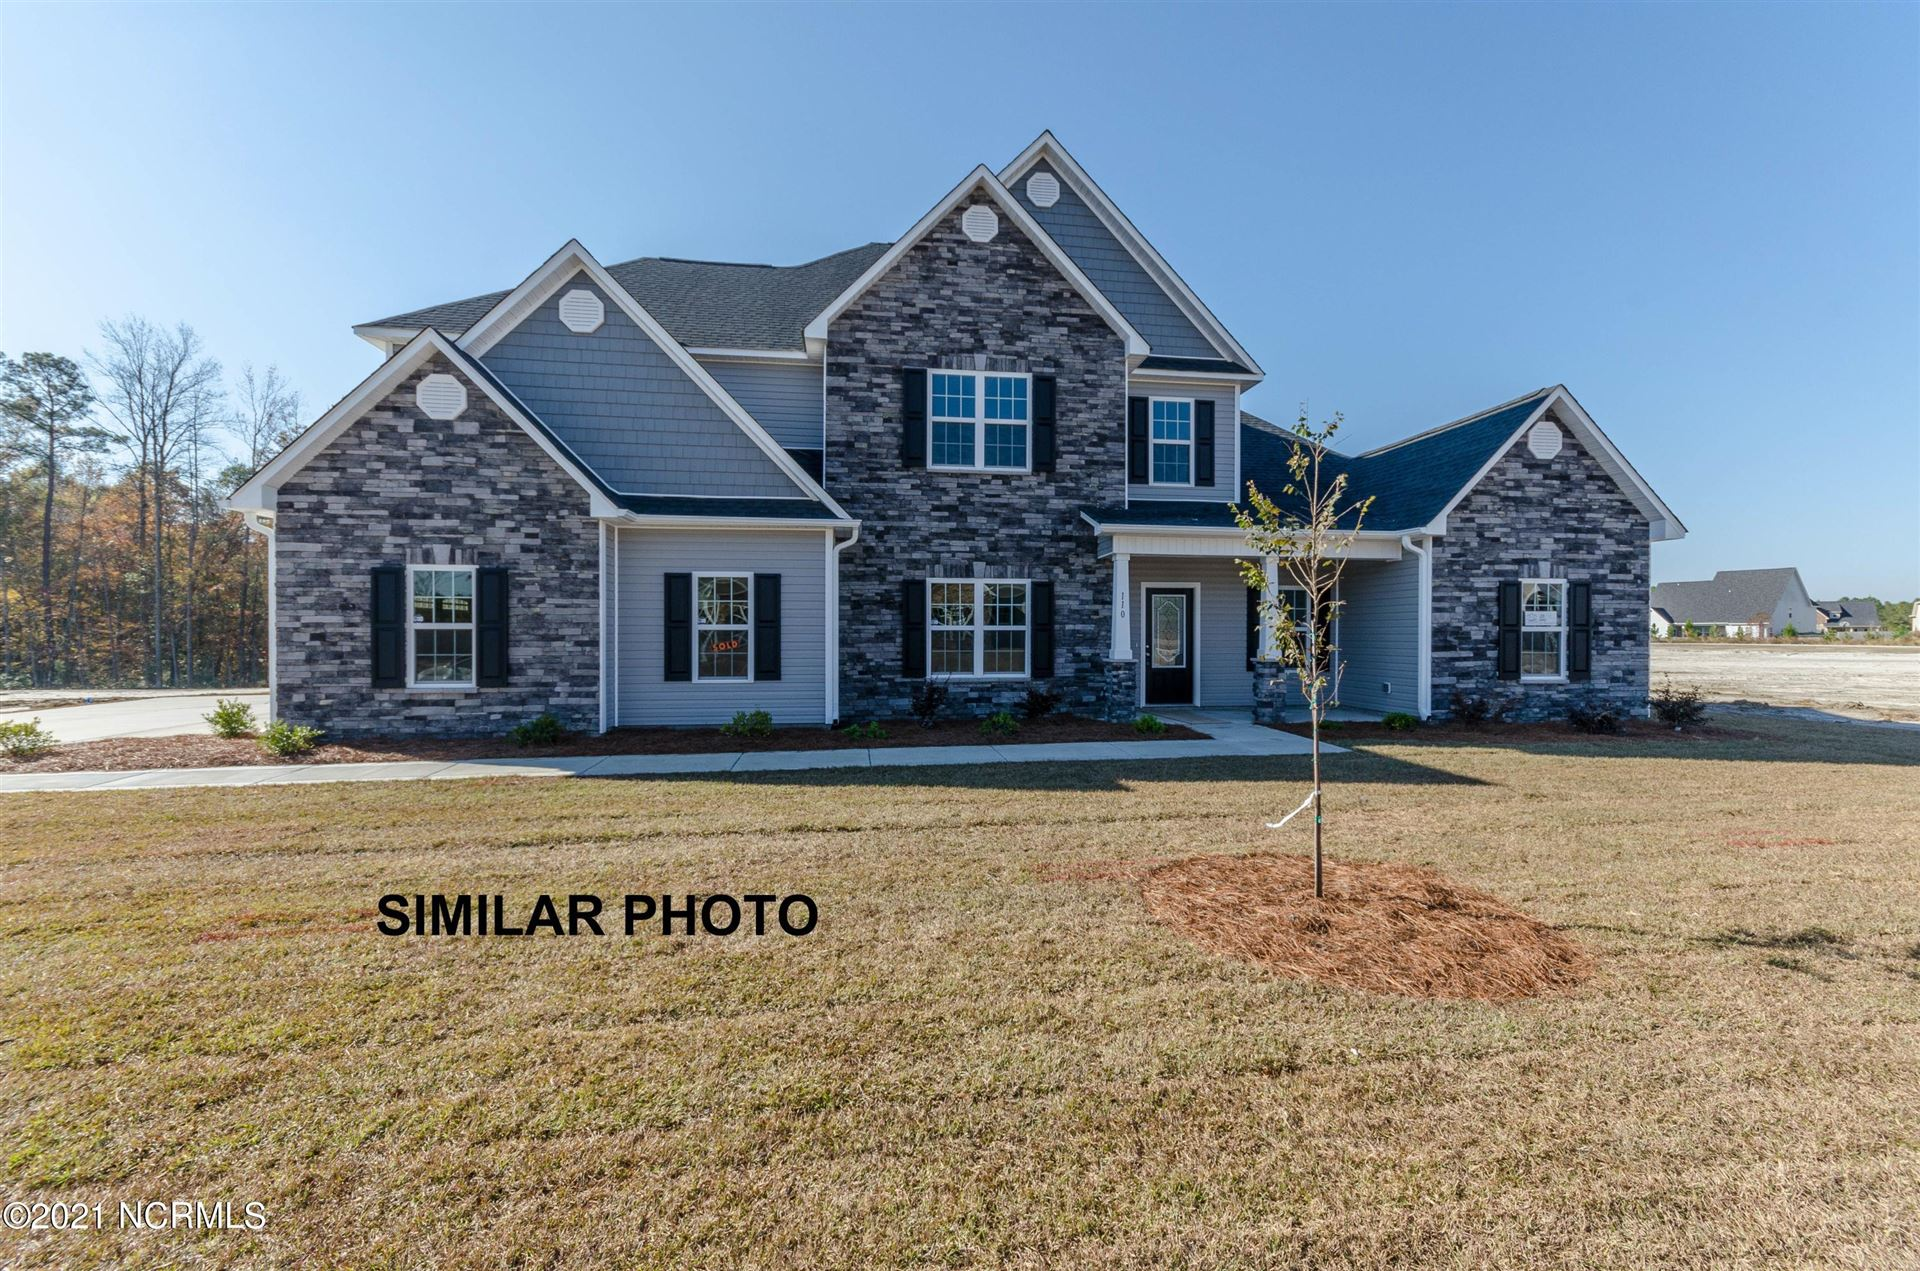 Photo for 313 Naval Store Drive, Jacksonville, NC 28546 (MLS # 100272366)